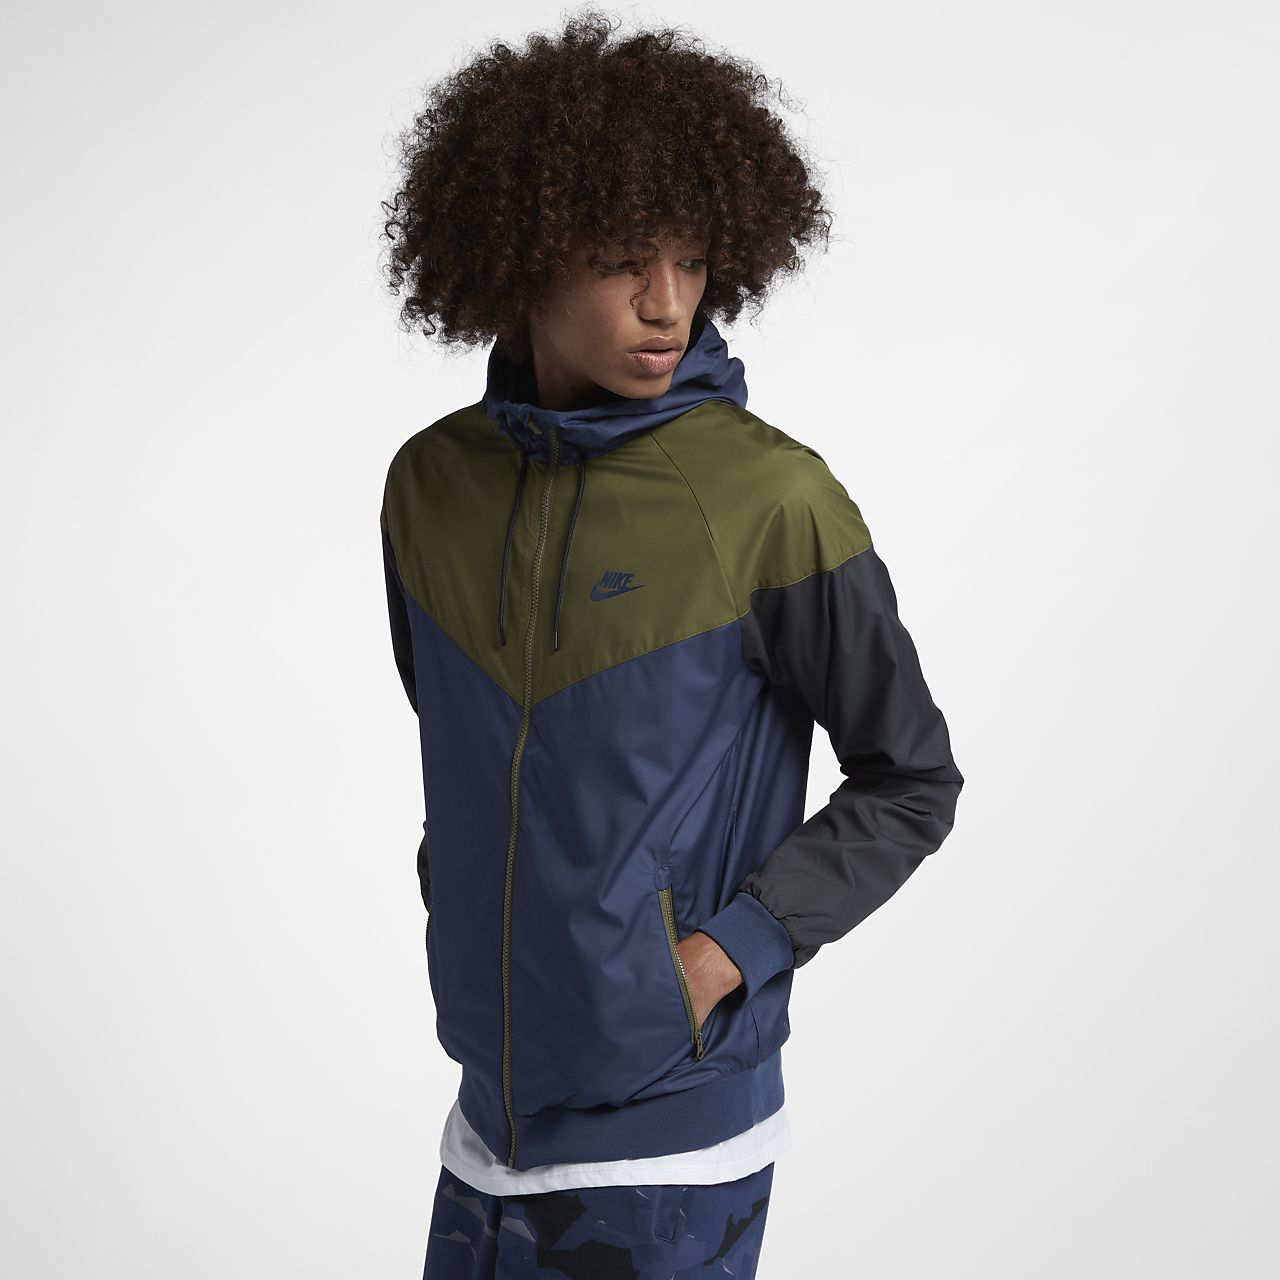 2746e10860 Low Resolution Nike Windrunner Men s Jacket Nike Windrunner Men s Jacket